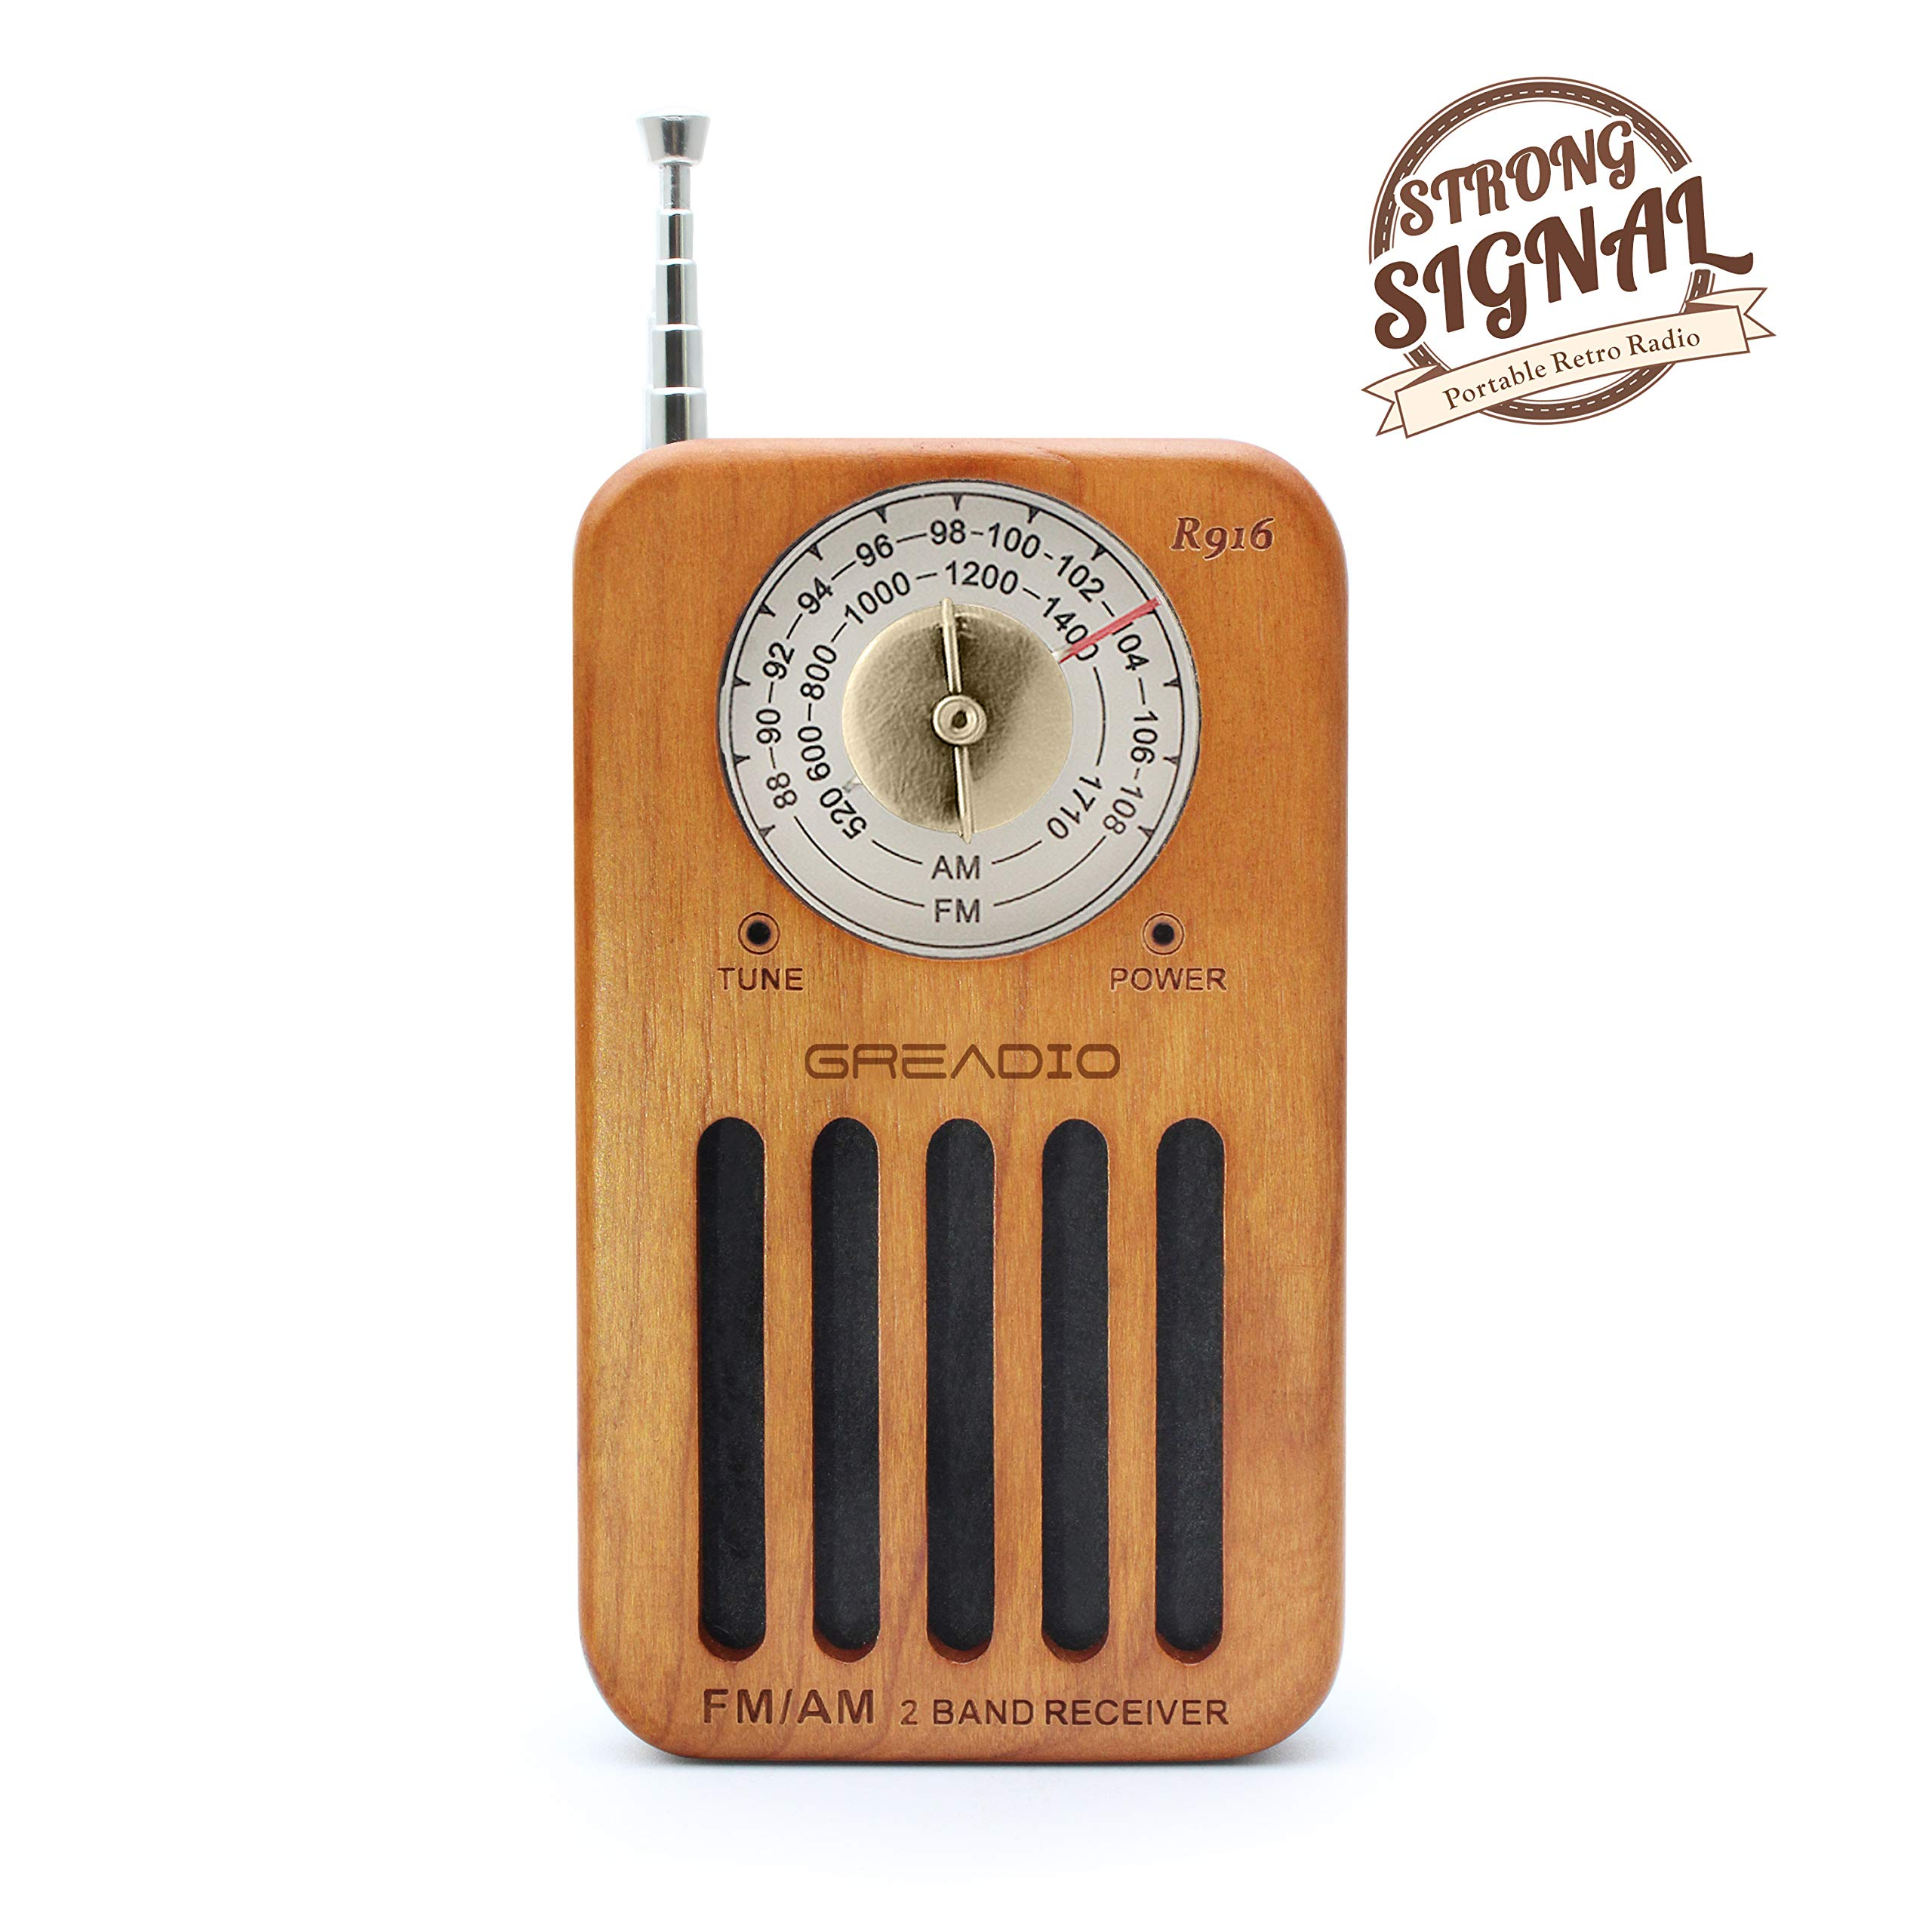 AM/FM Portable Radio, Retro Cherry Wood Pocket Radio with Best Reception, Headphone Jack, Battery Operated Personal Transistor by 2 AA Battery for Jogging, Walking and Travelling